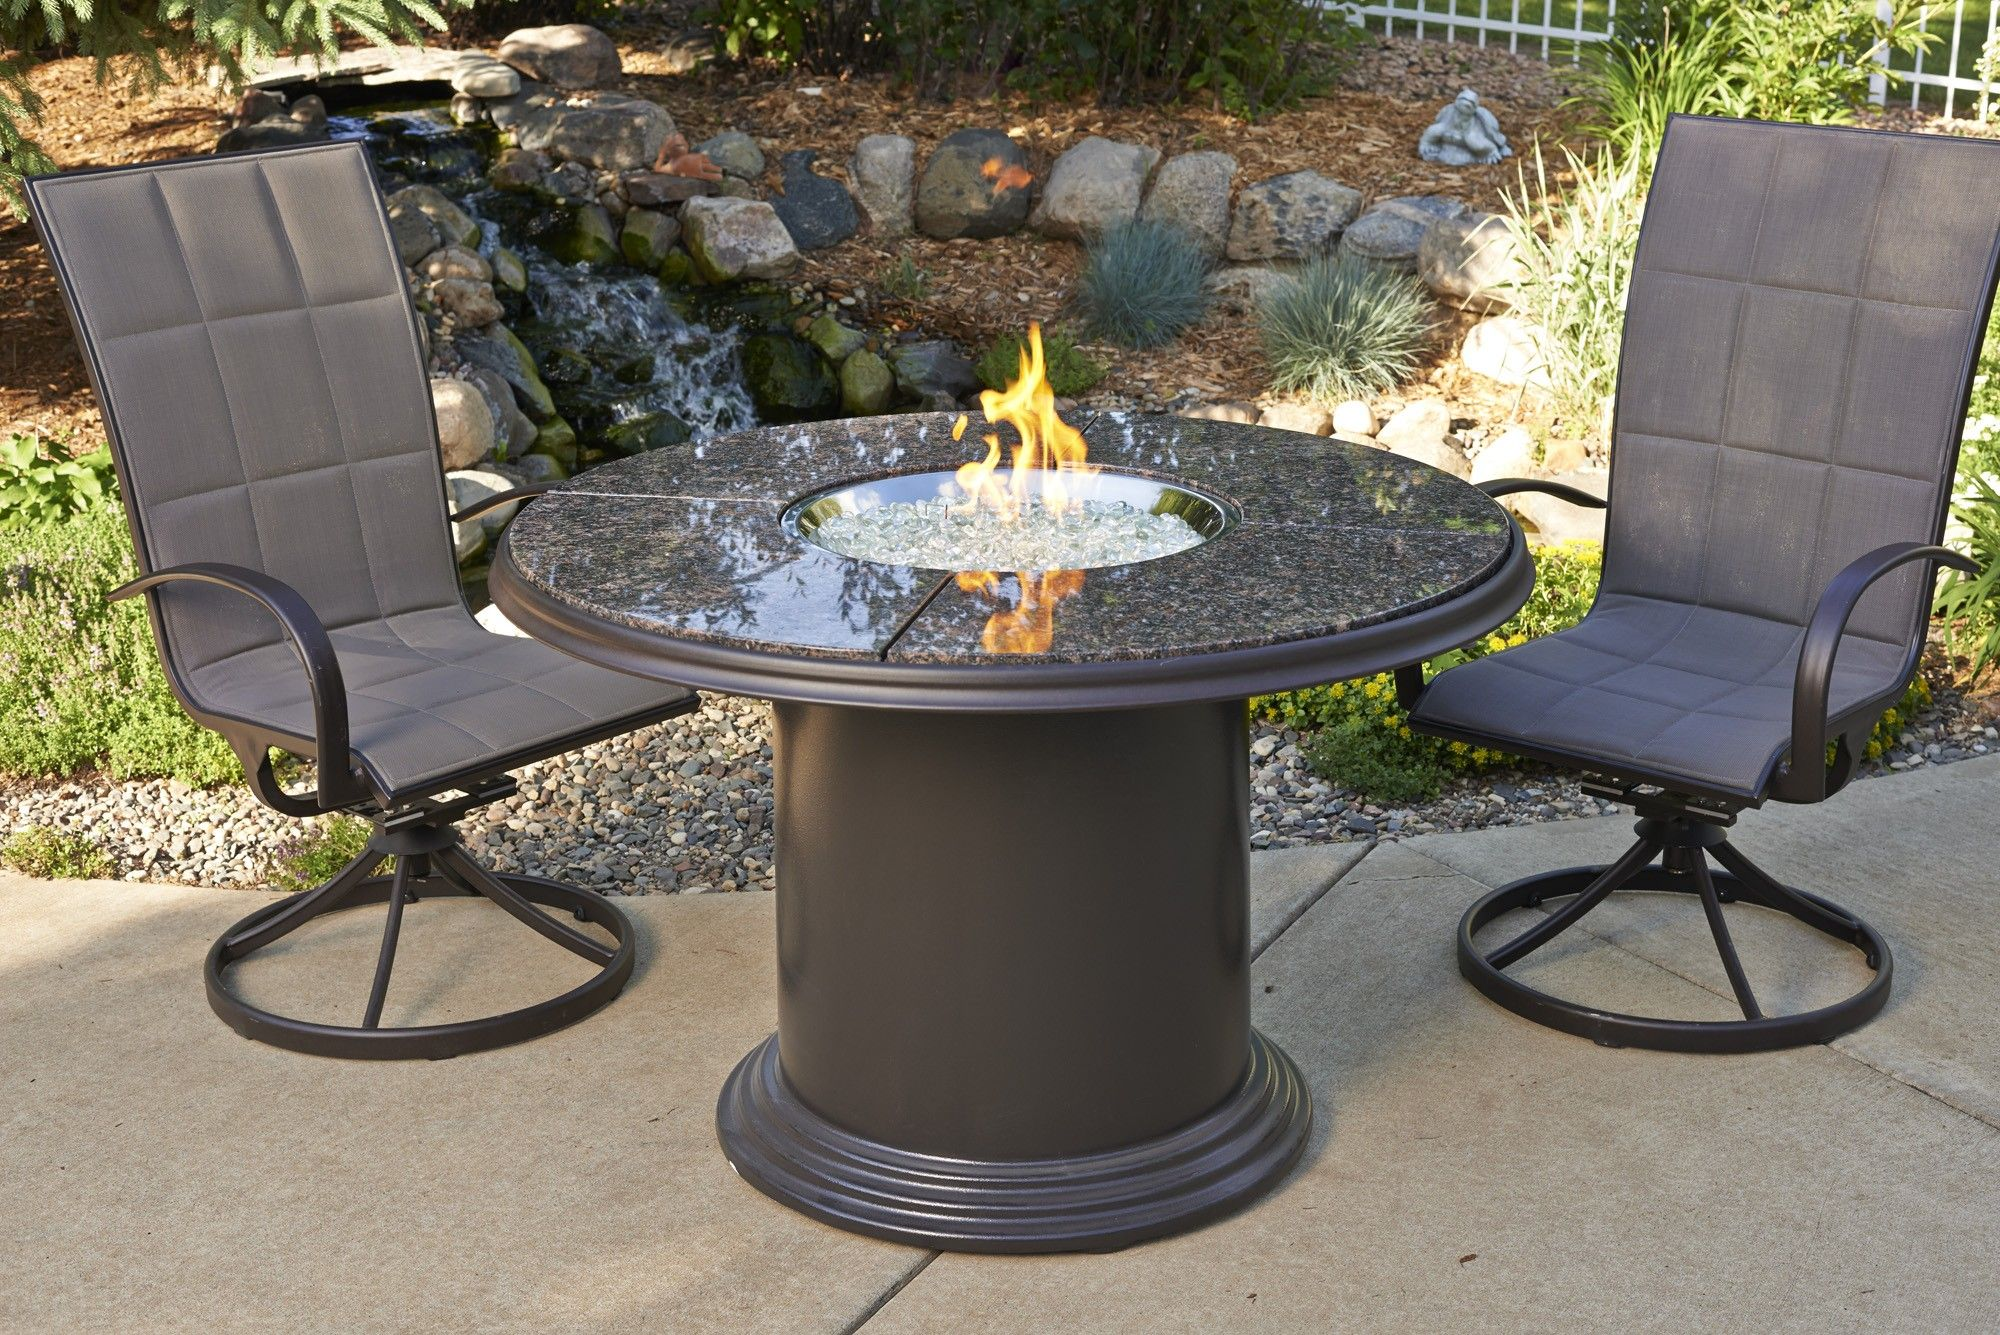 Grand Colonial Dining Fire Pit Table with empire dining chairs ...